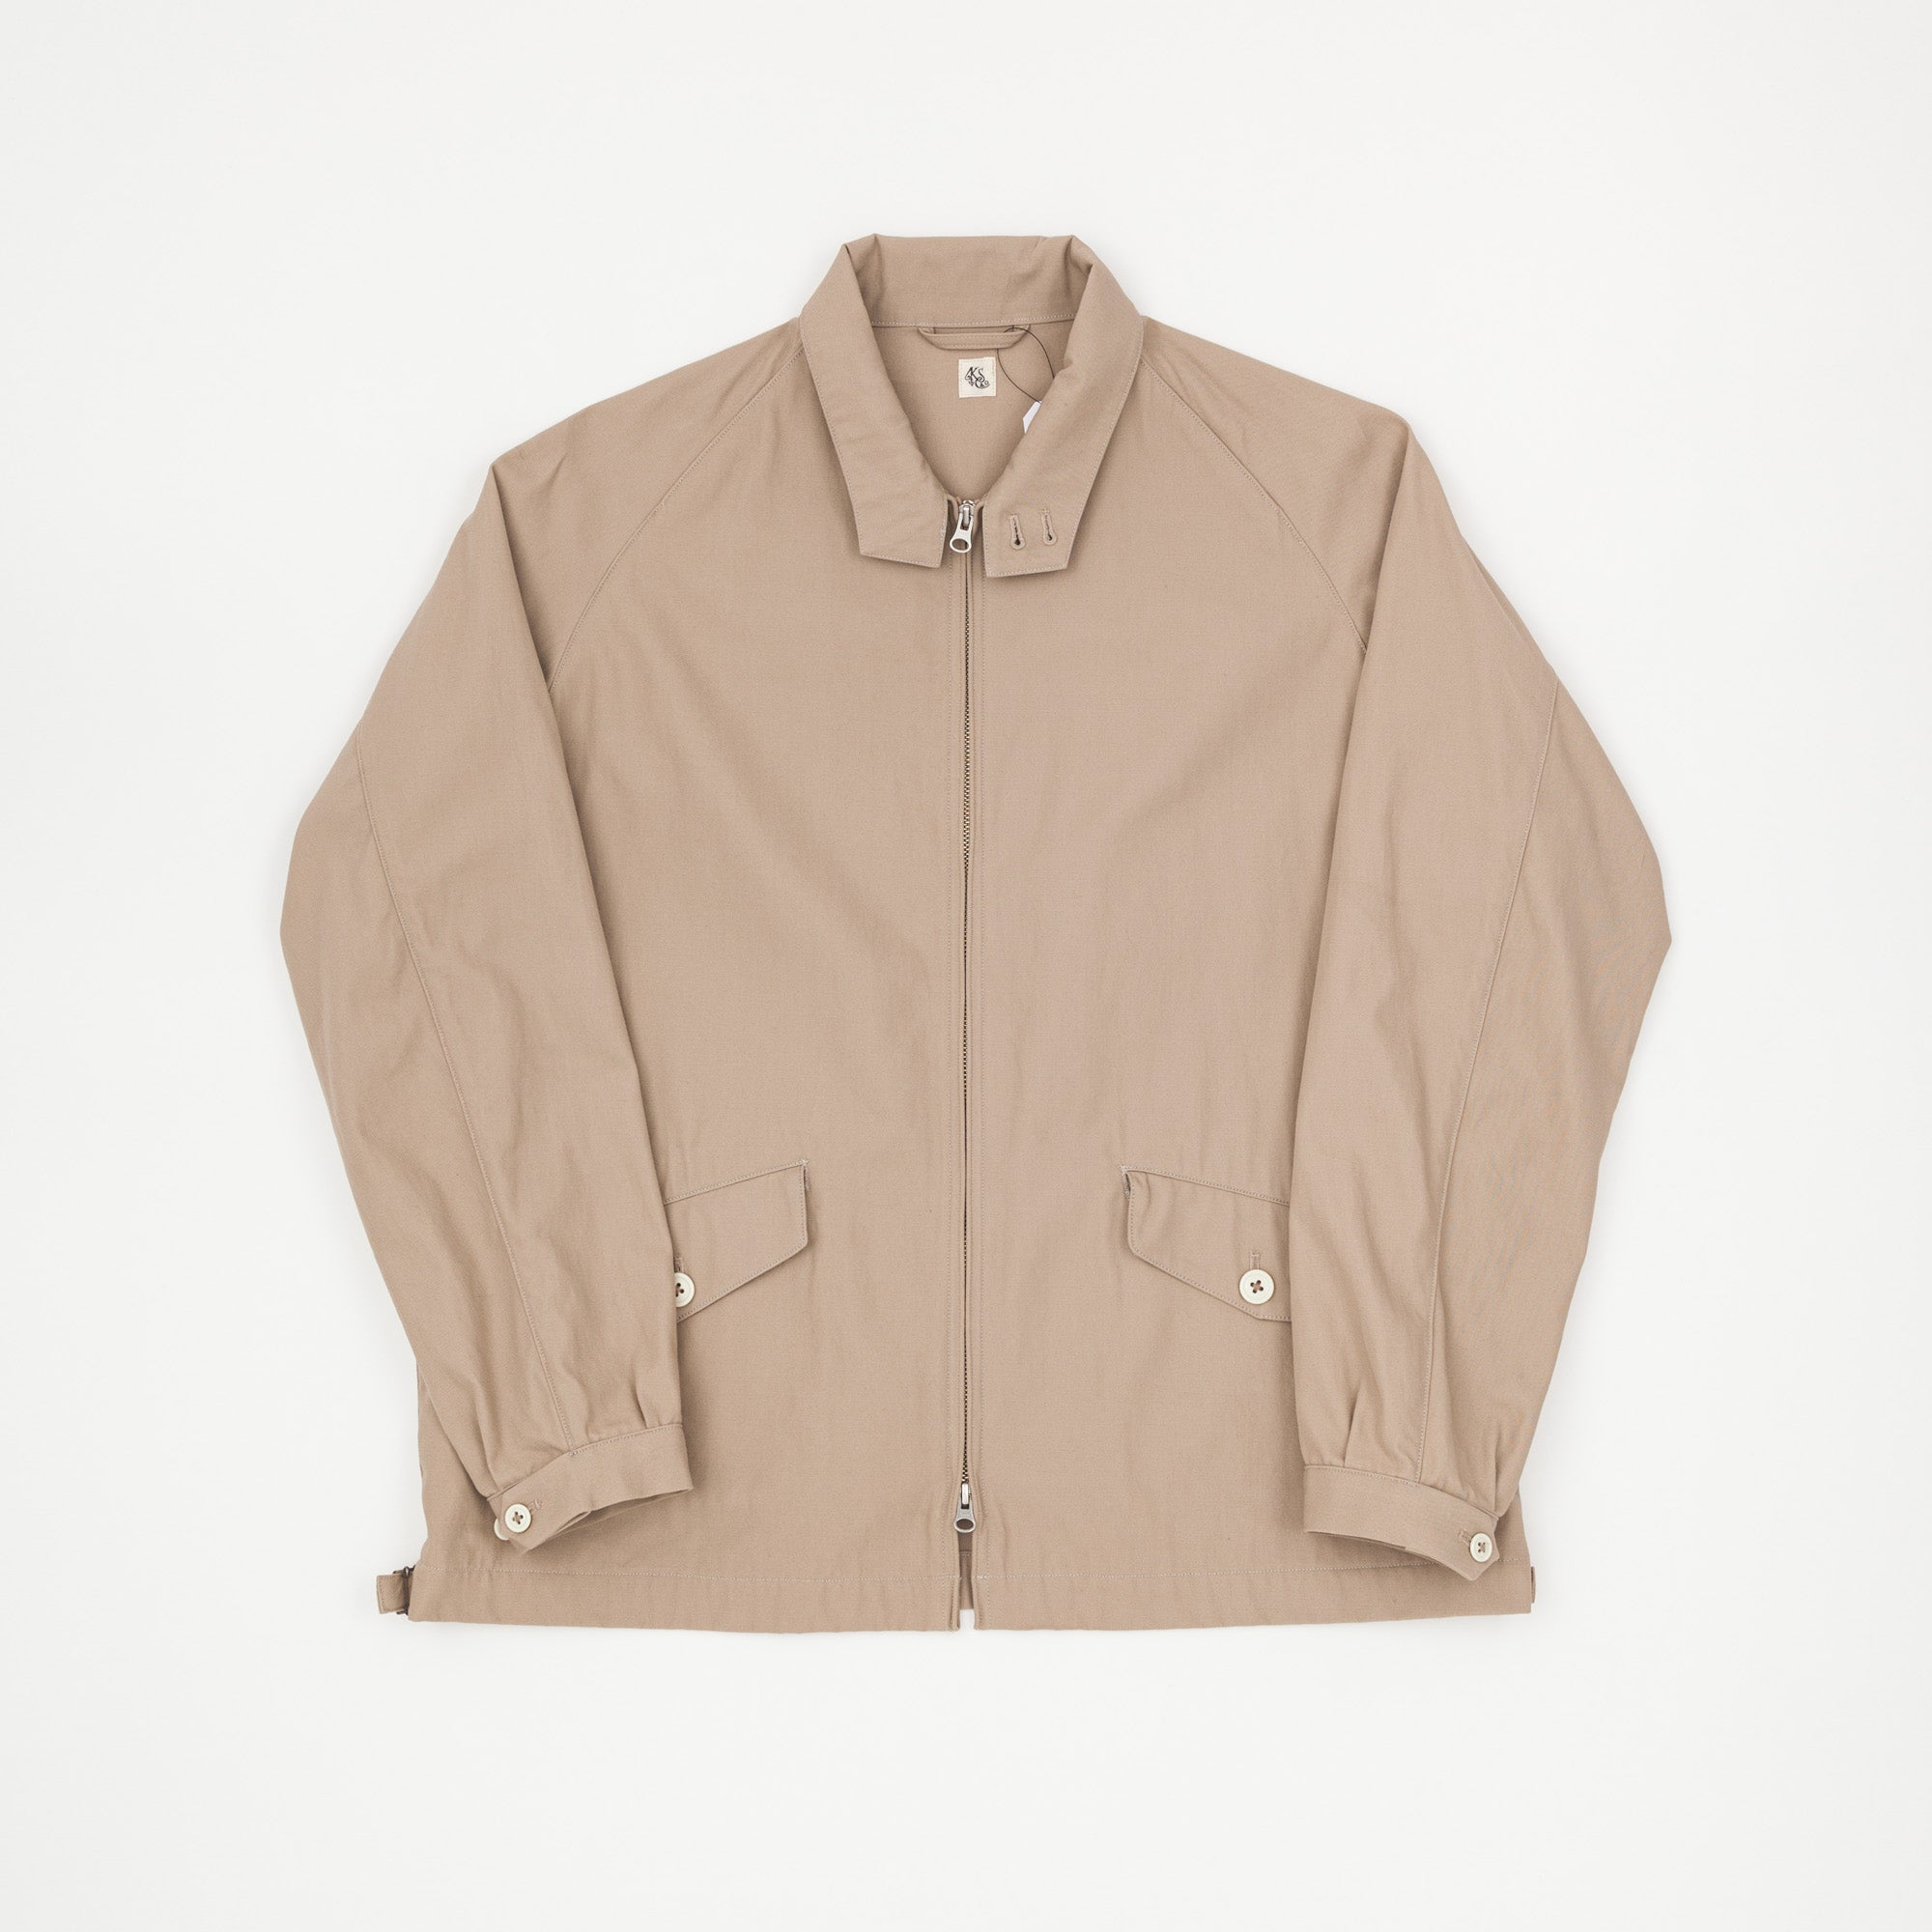 Beams Plus Kaptain Sunshine Jacket